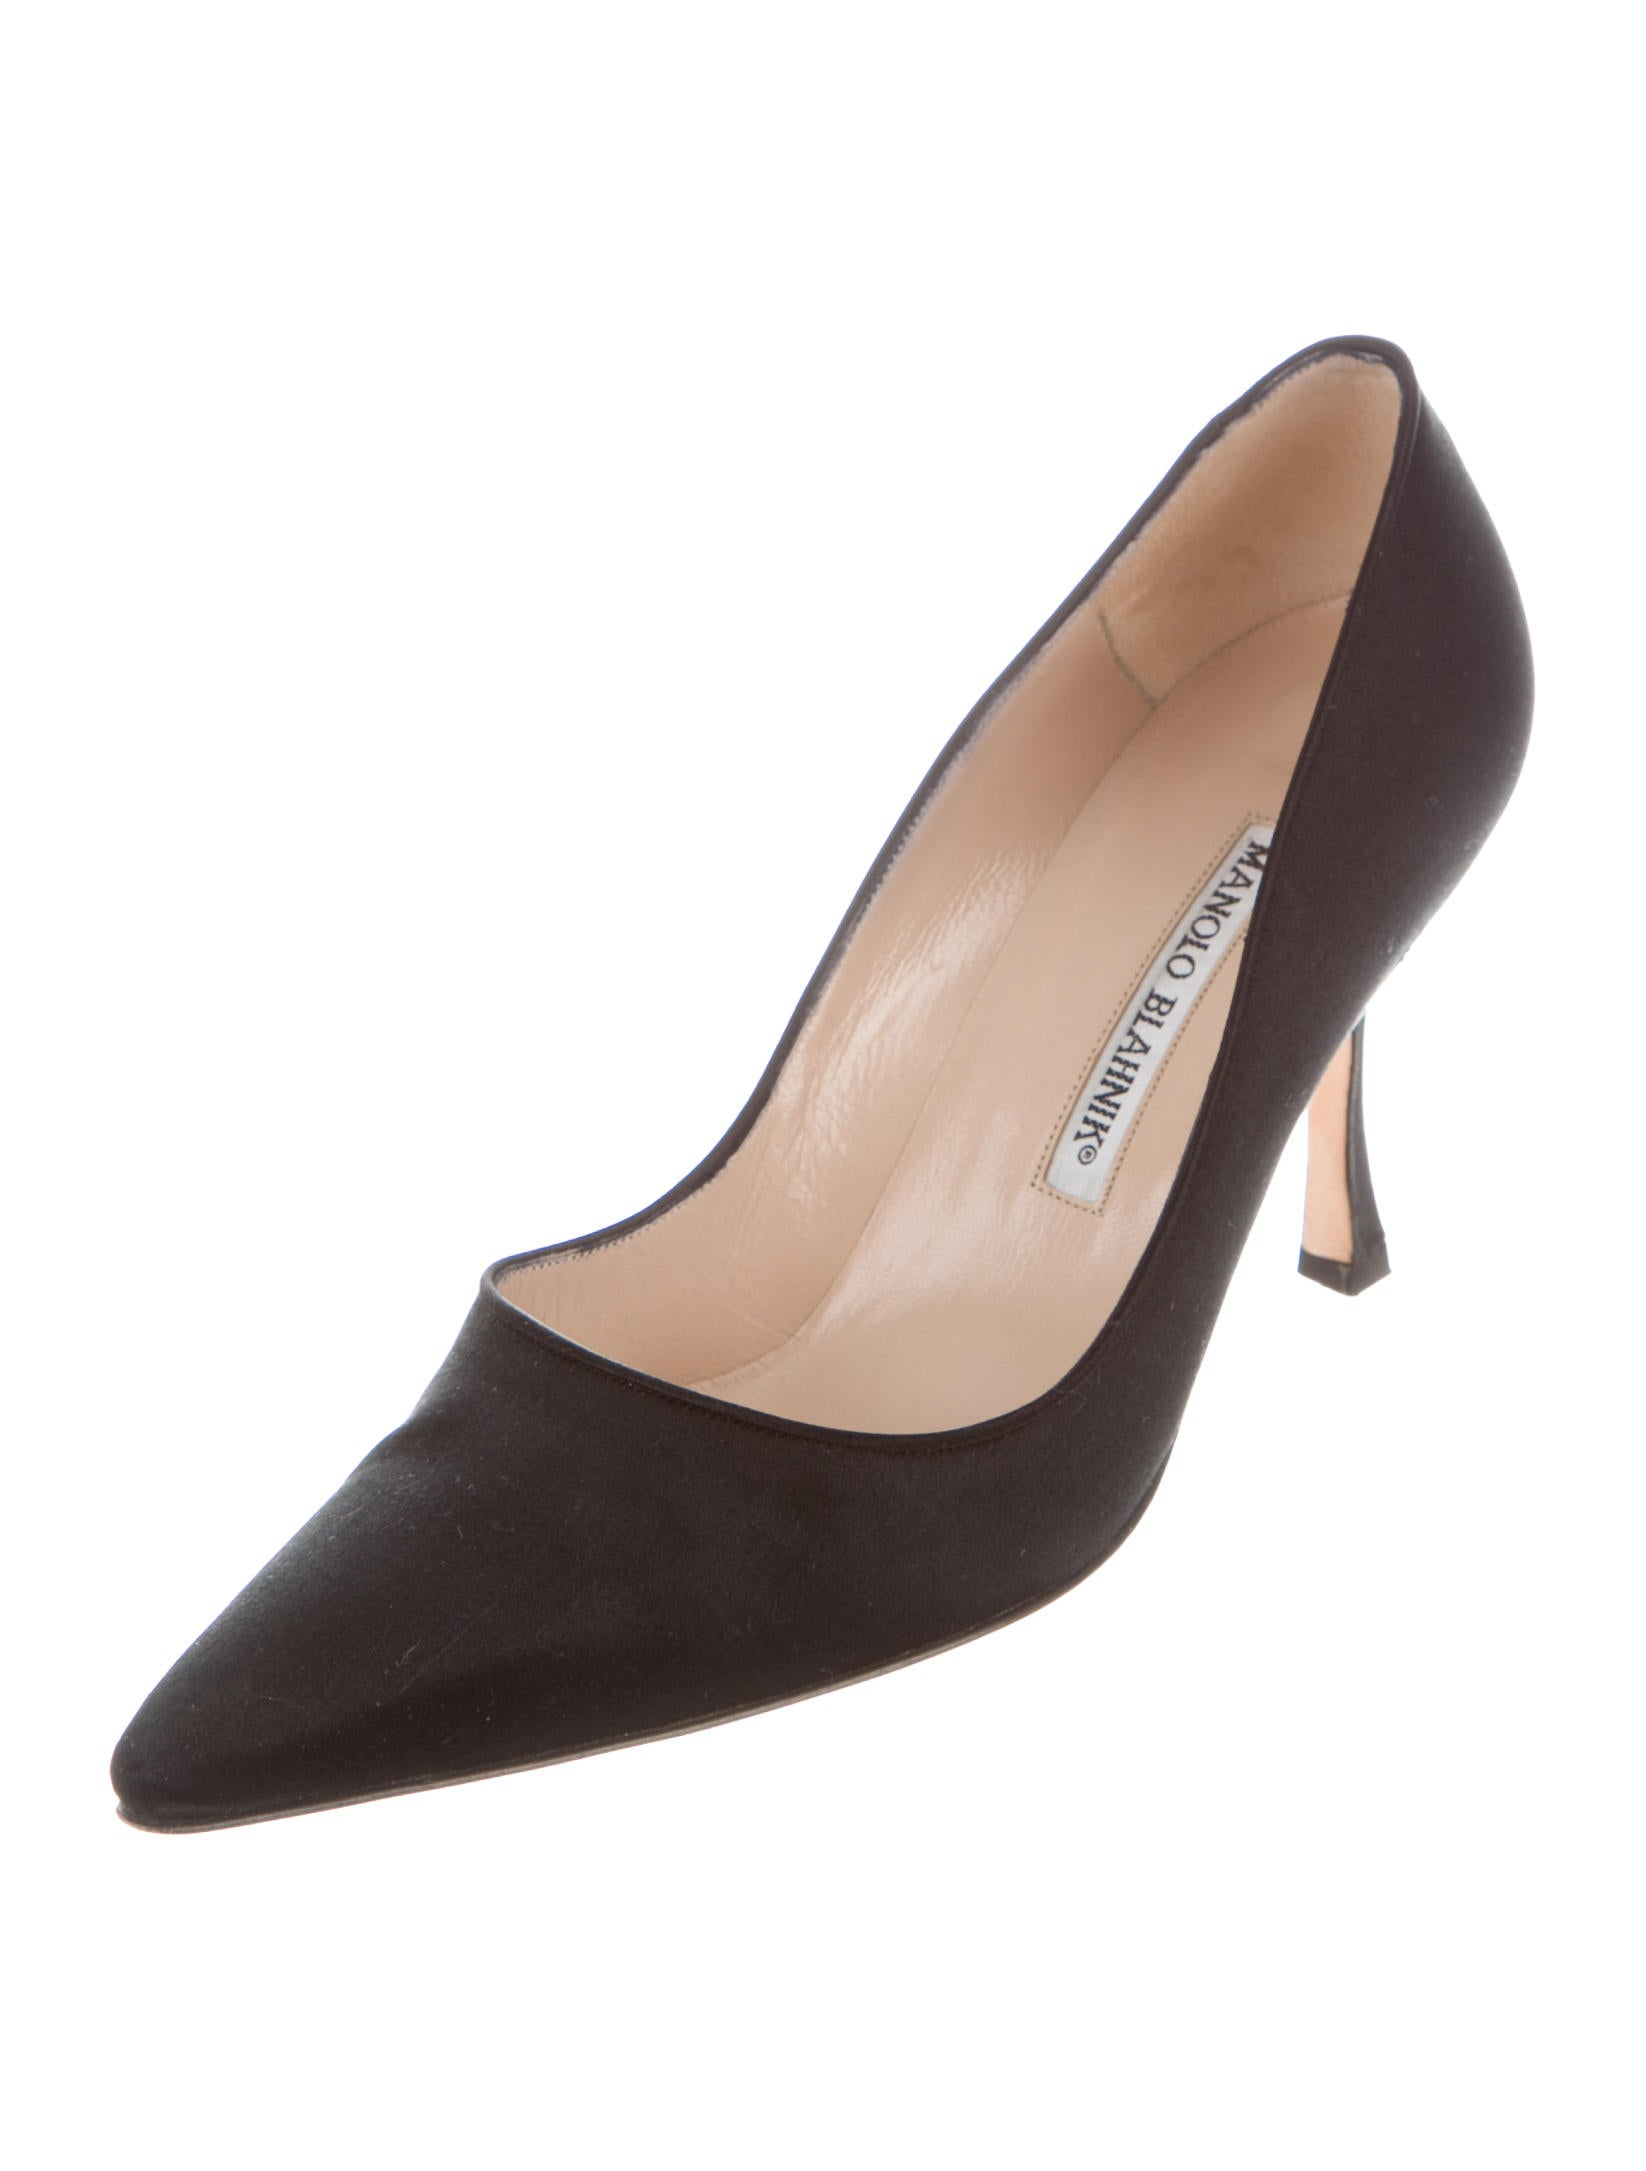 Manolo blahnik tuccio satin pumps shoes moo66356 the for Who is manolo blahnik